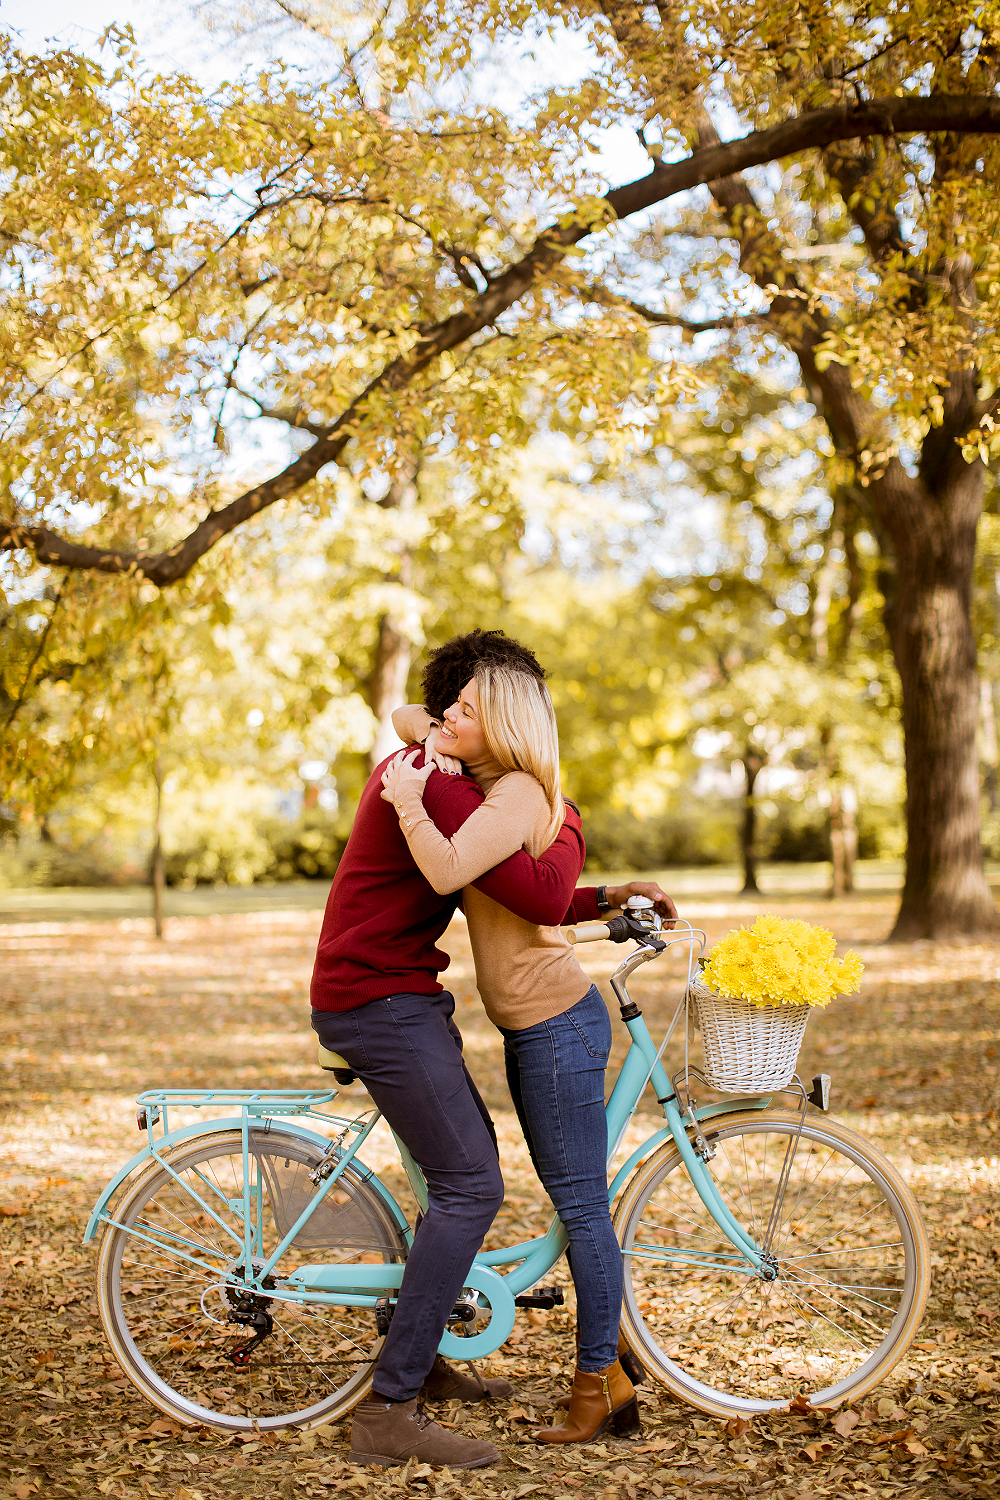 Me, autumn, and bicycle